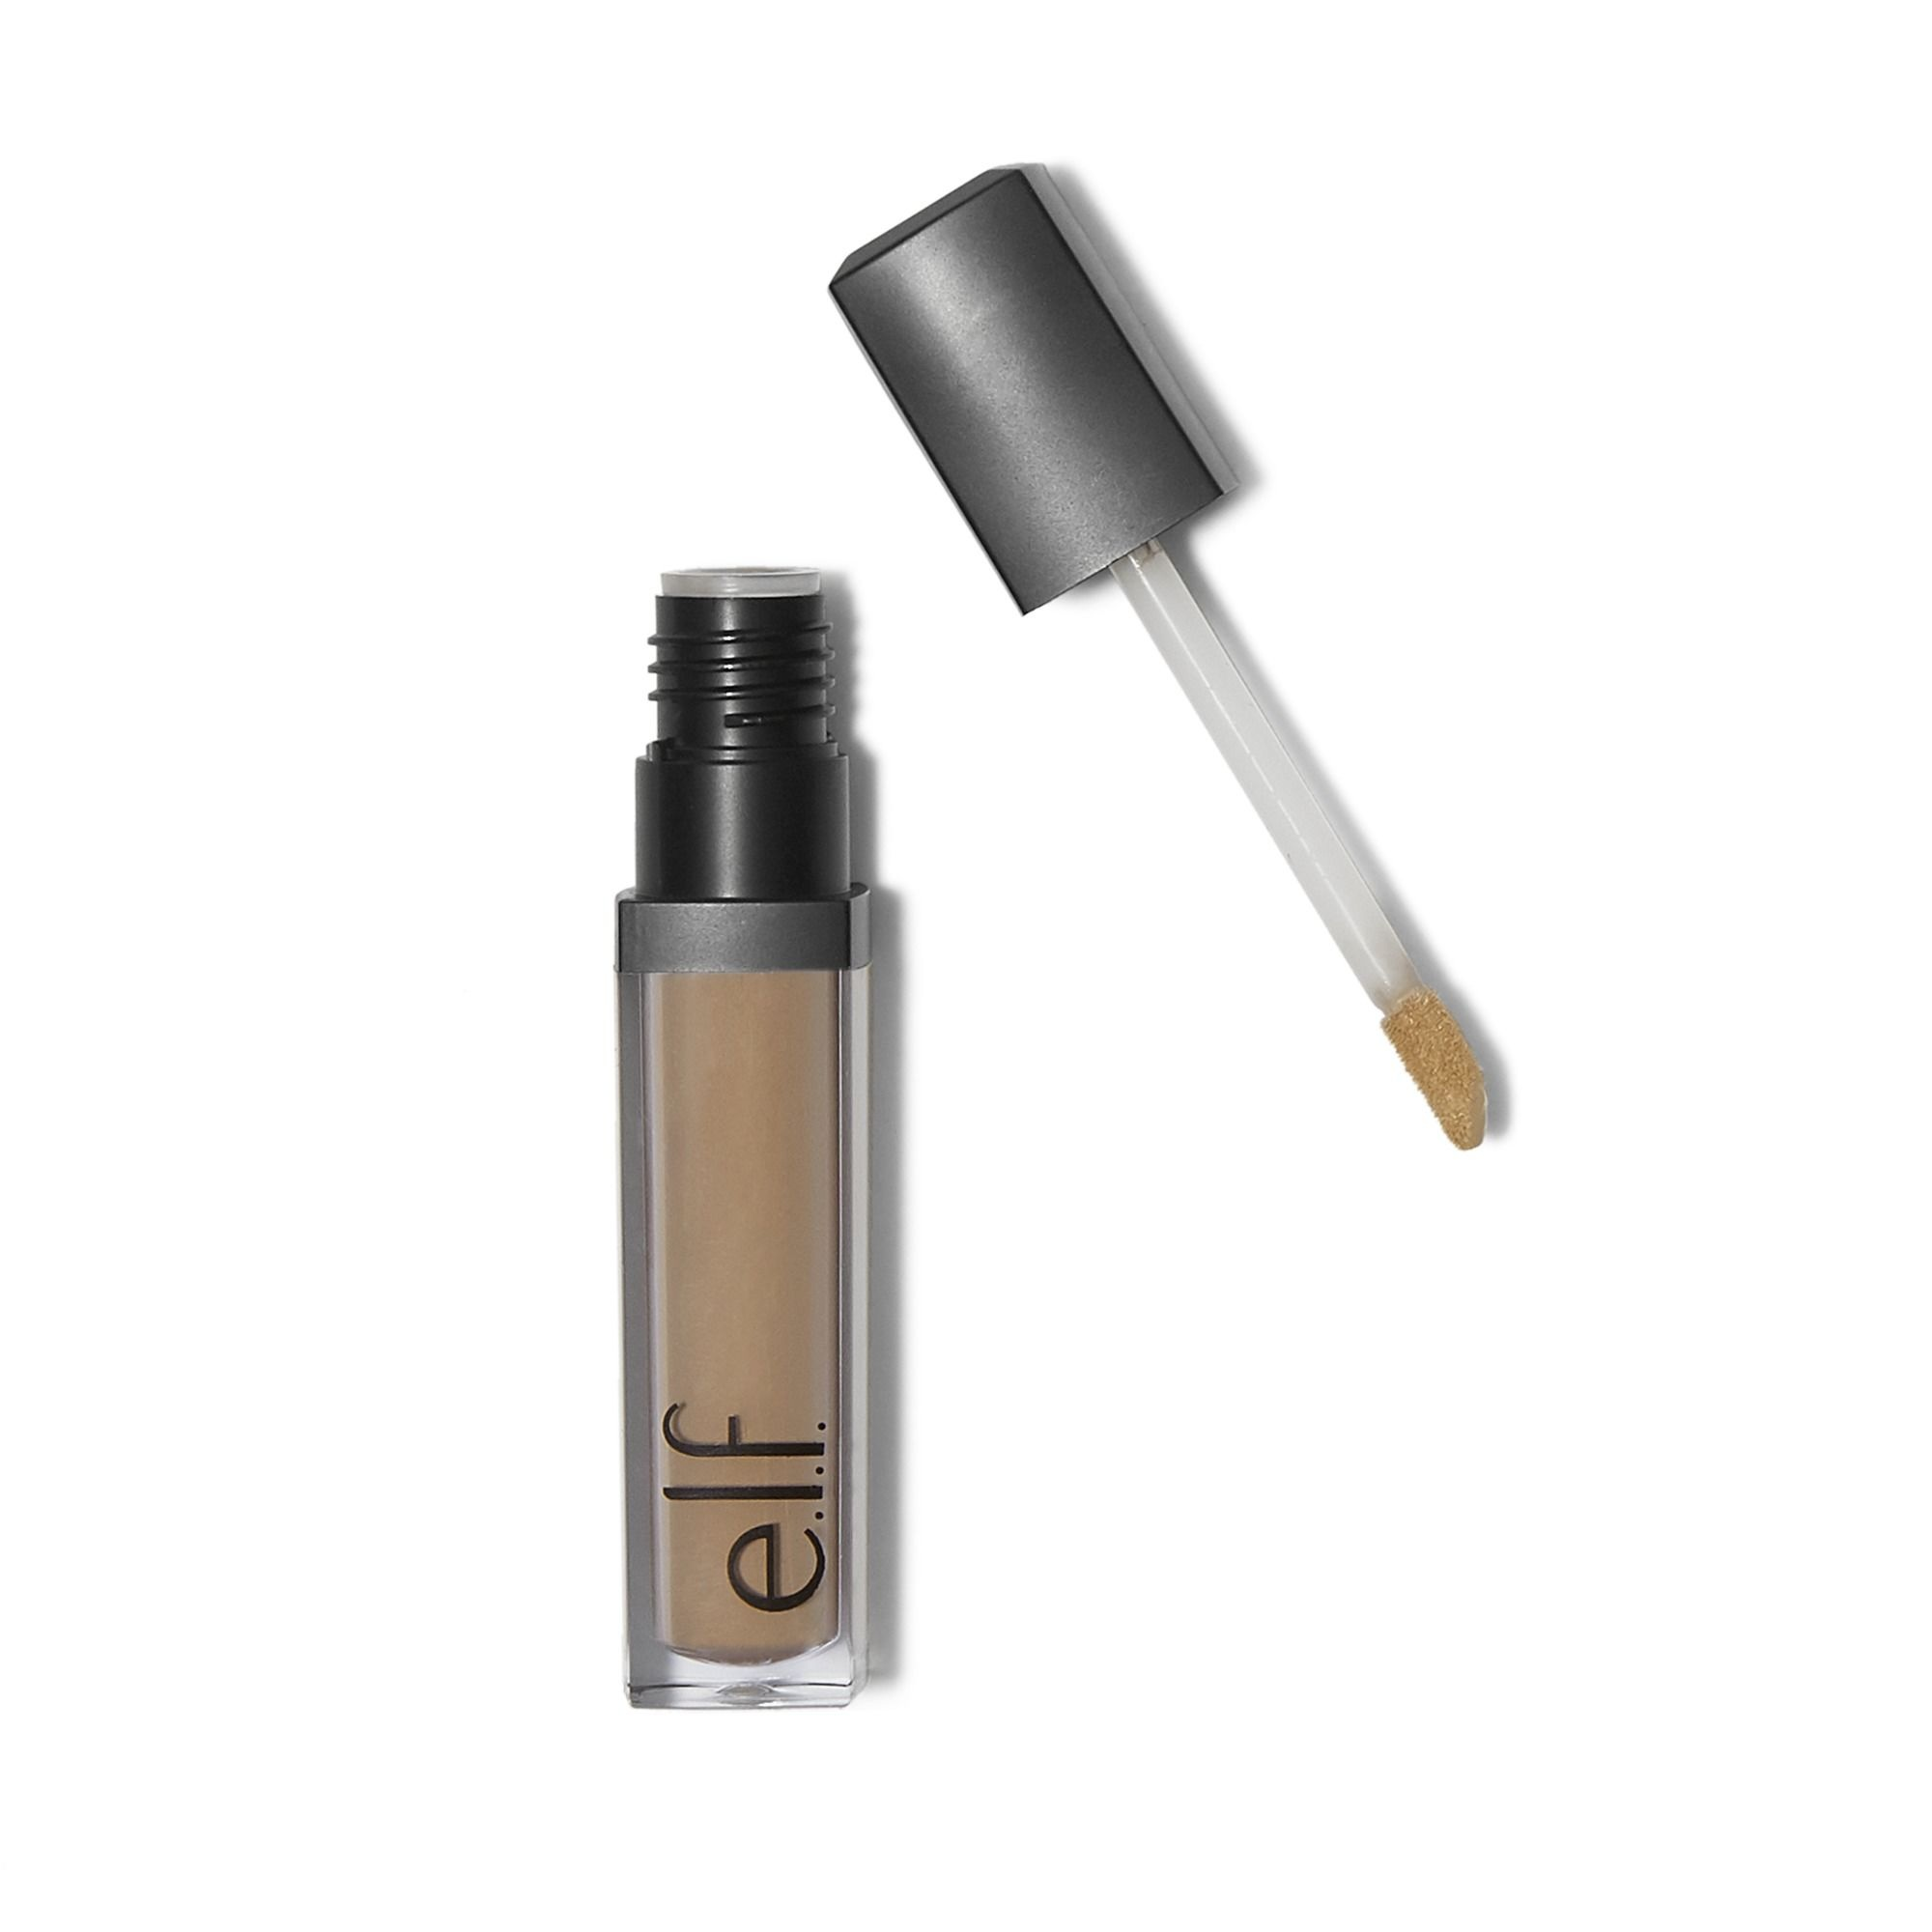 e.l.f. Cosmetics HD Lifting Concealer